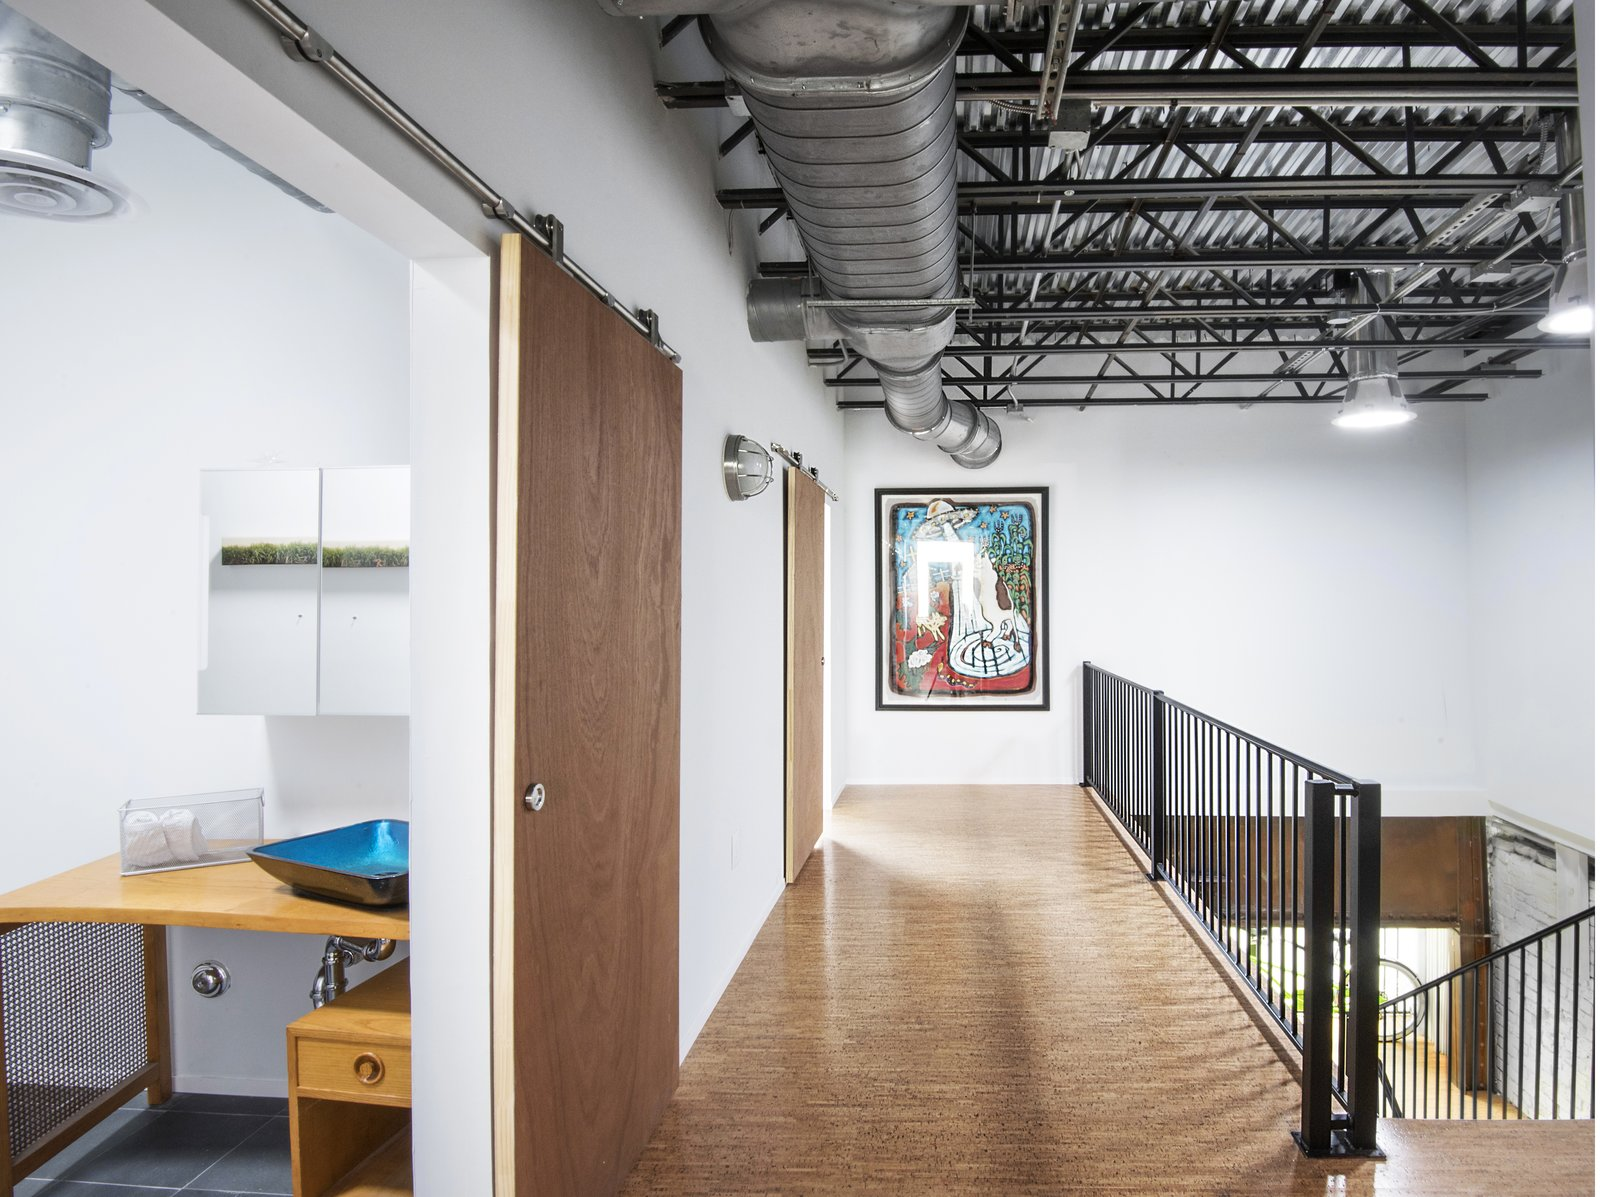 guest bath, residence hall, stairwell, exposed ceiling throughout residence, solatube provides natural light.  Studio GoodLight by Liesa Cole